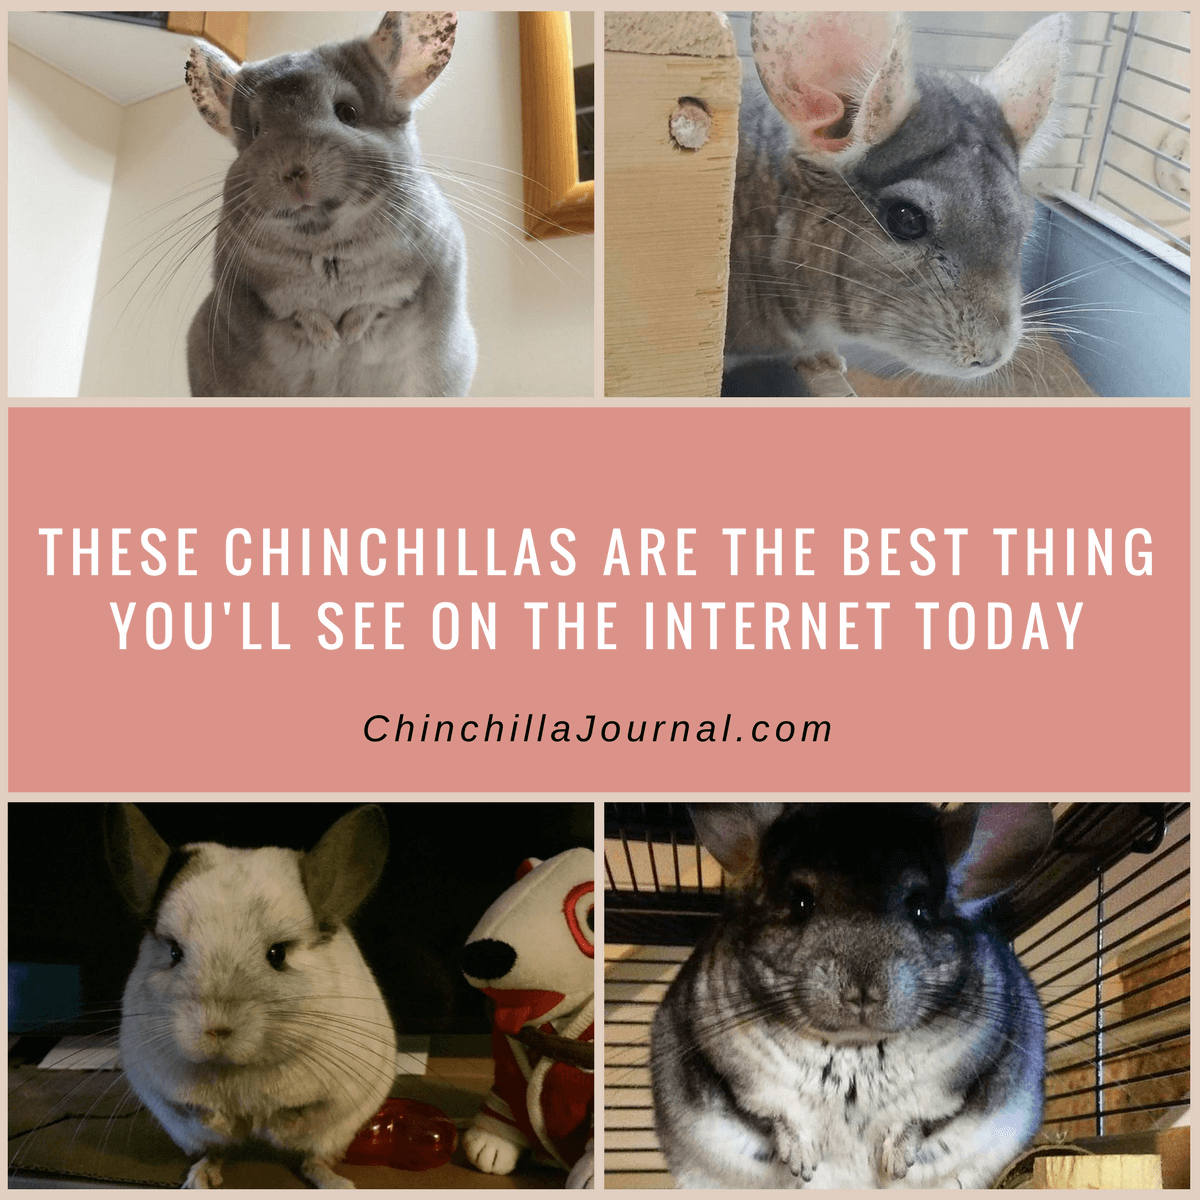 These Chinchillas Are The Best Thing You'll See On The Internet Today